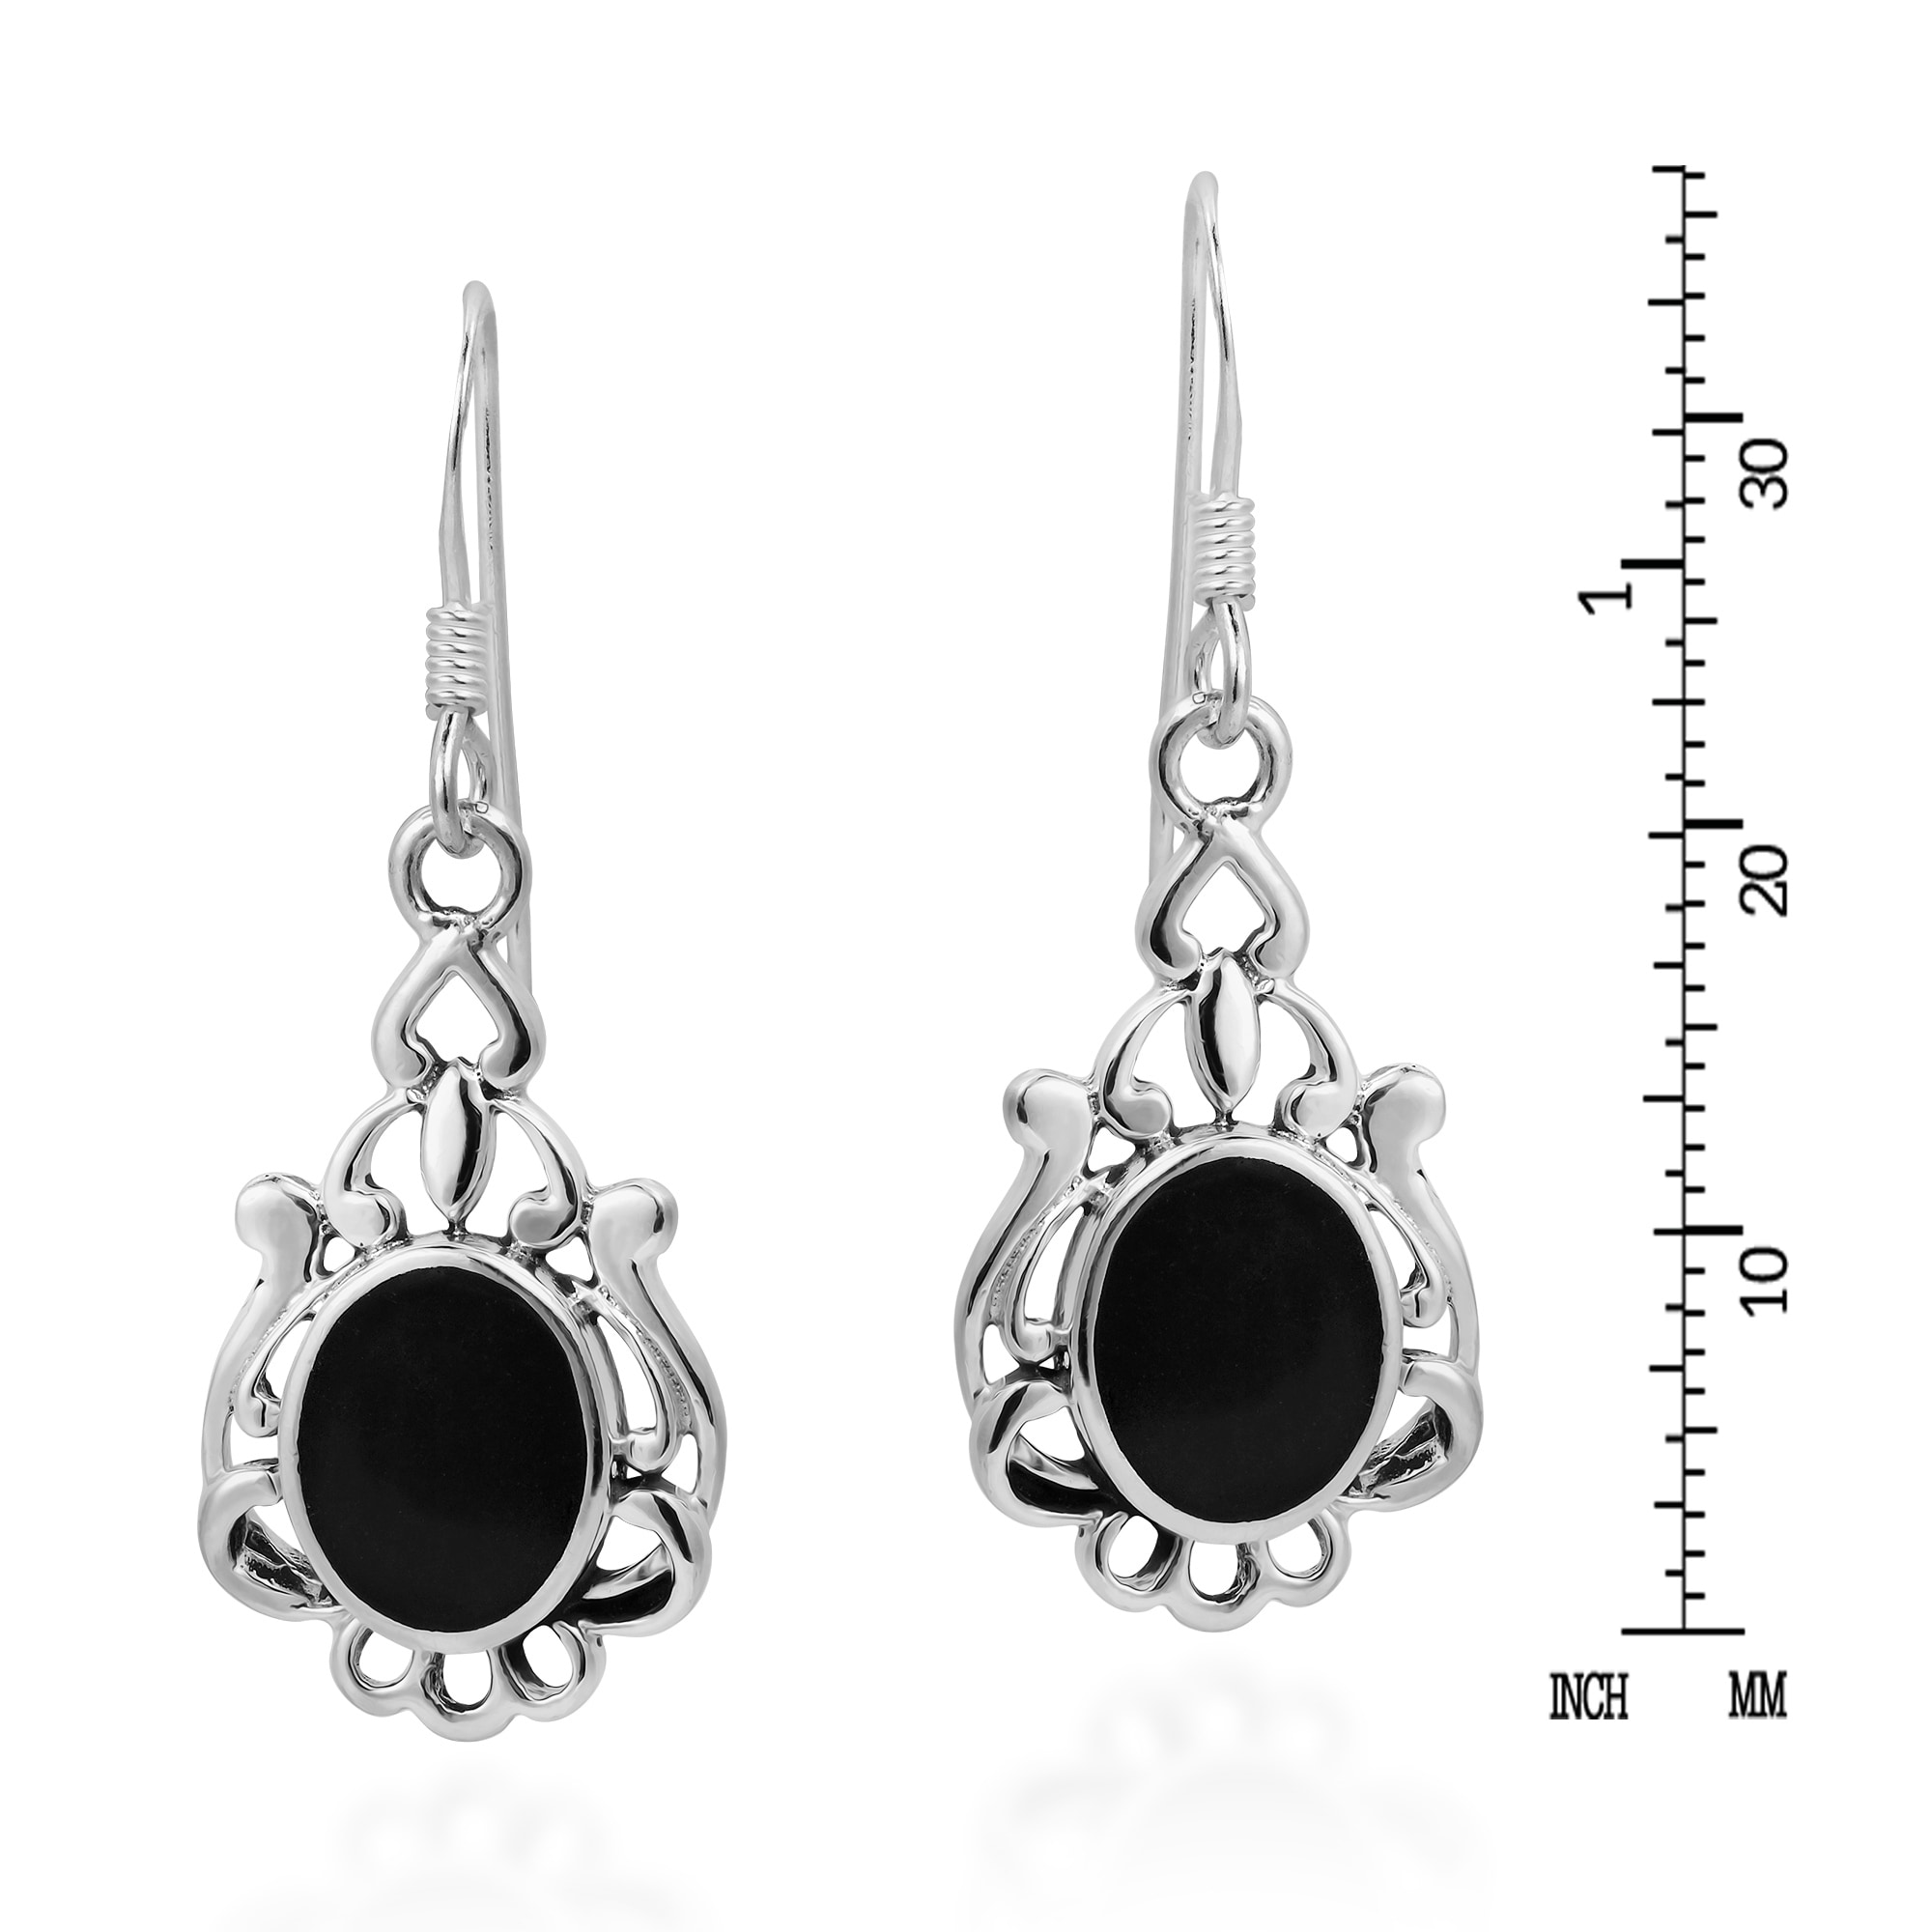 Handmade Vintage Style Oval Stone 925 Sterling Silver Earrings Thailand On Free Shipping Orders Over 45 10584488